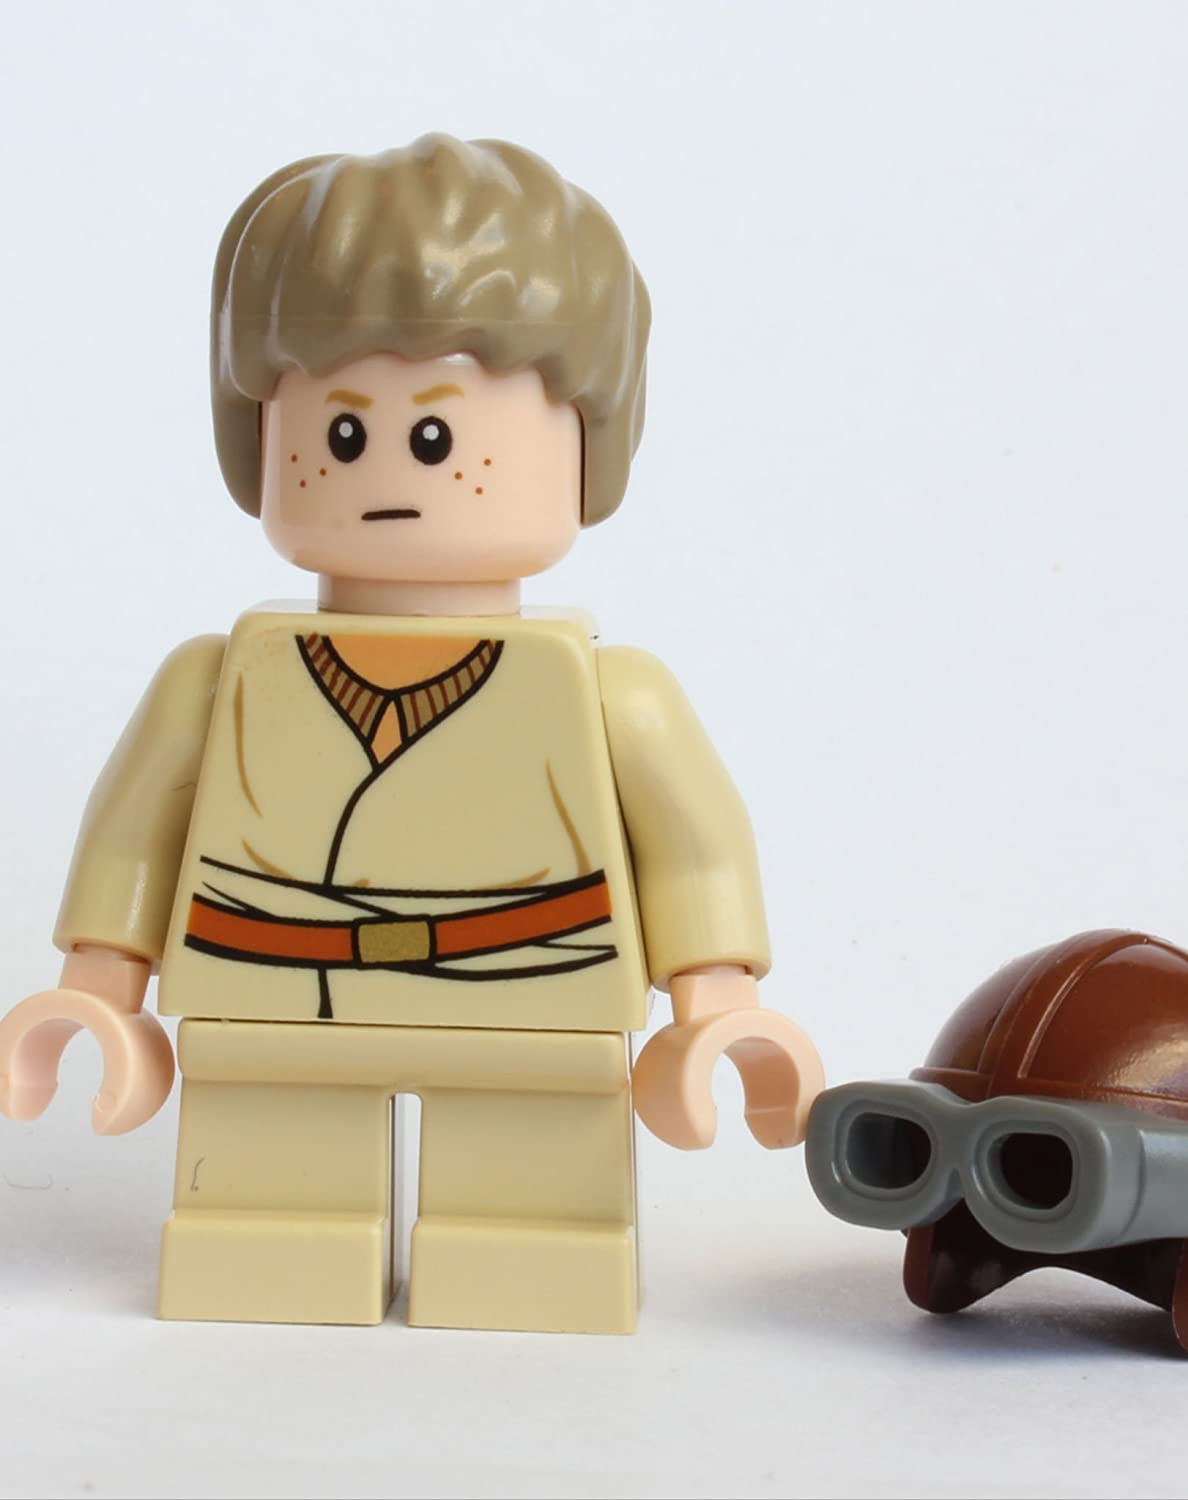 LEGO Star Wars Young Anakin Skywalker - from Set 7877